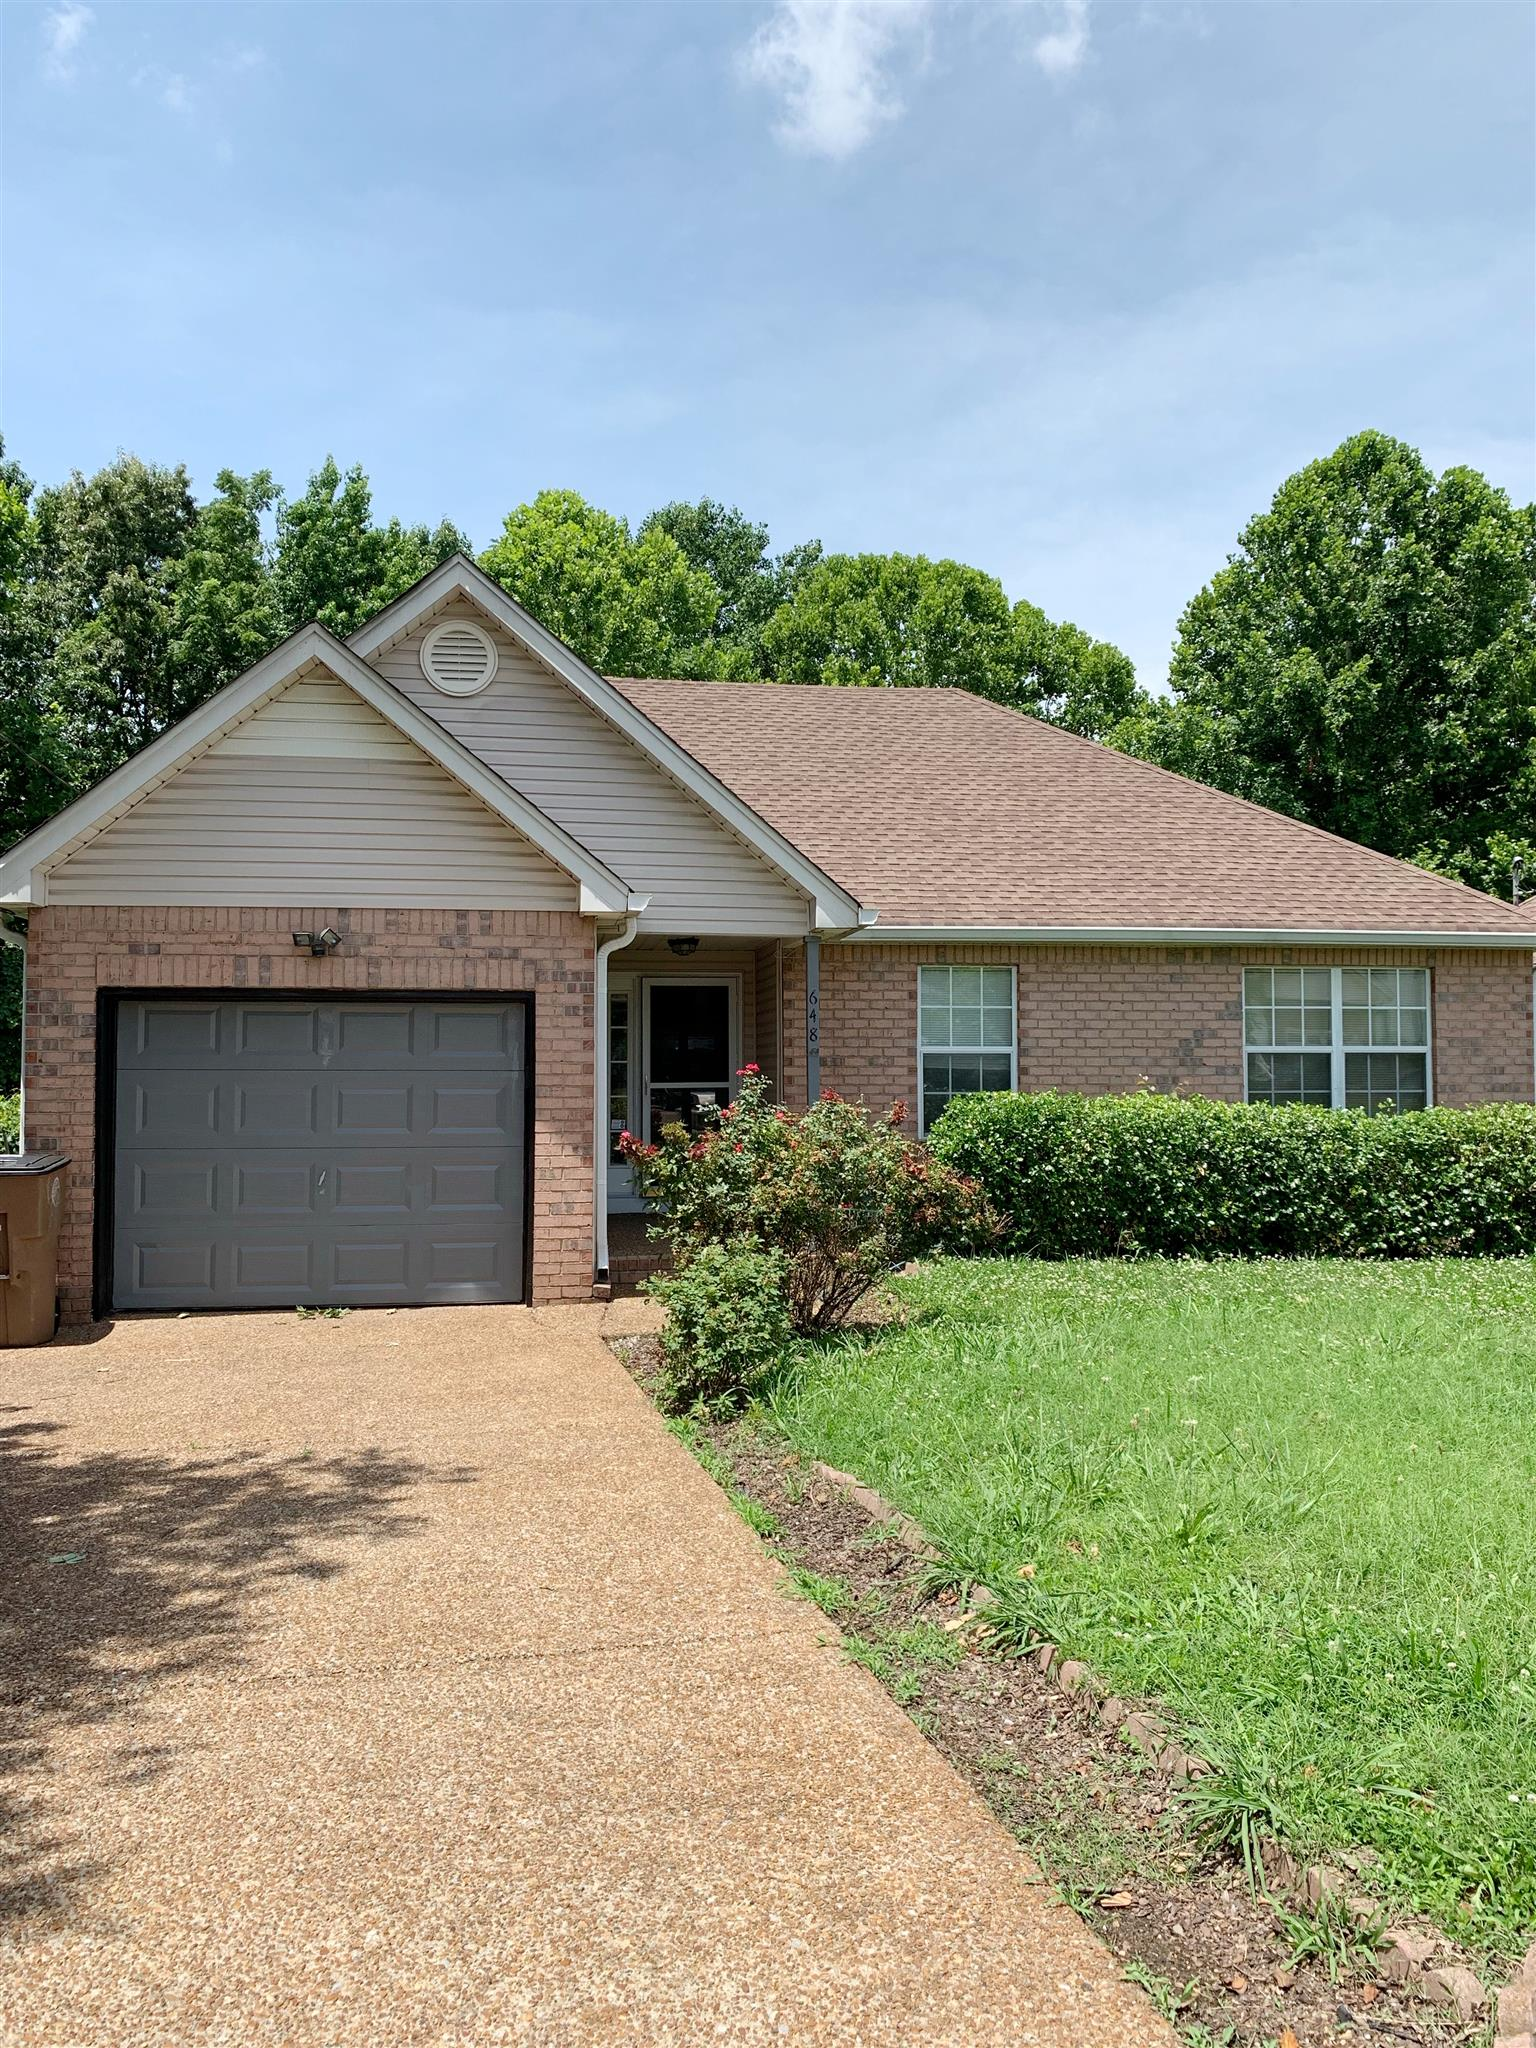 648 Ransom Village Way, Nashville-Antioch in Davidson County County, TN 37013 Home for Sale